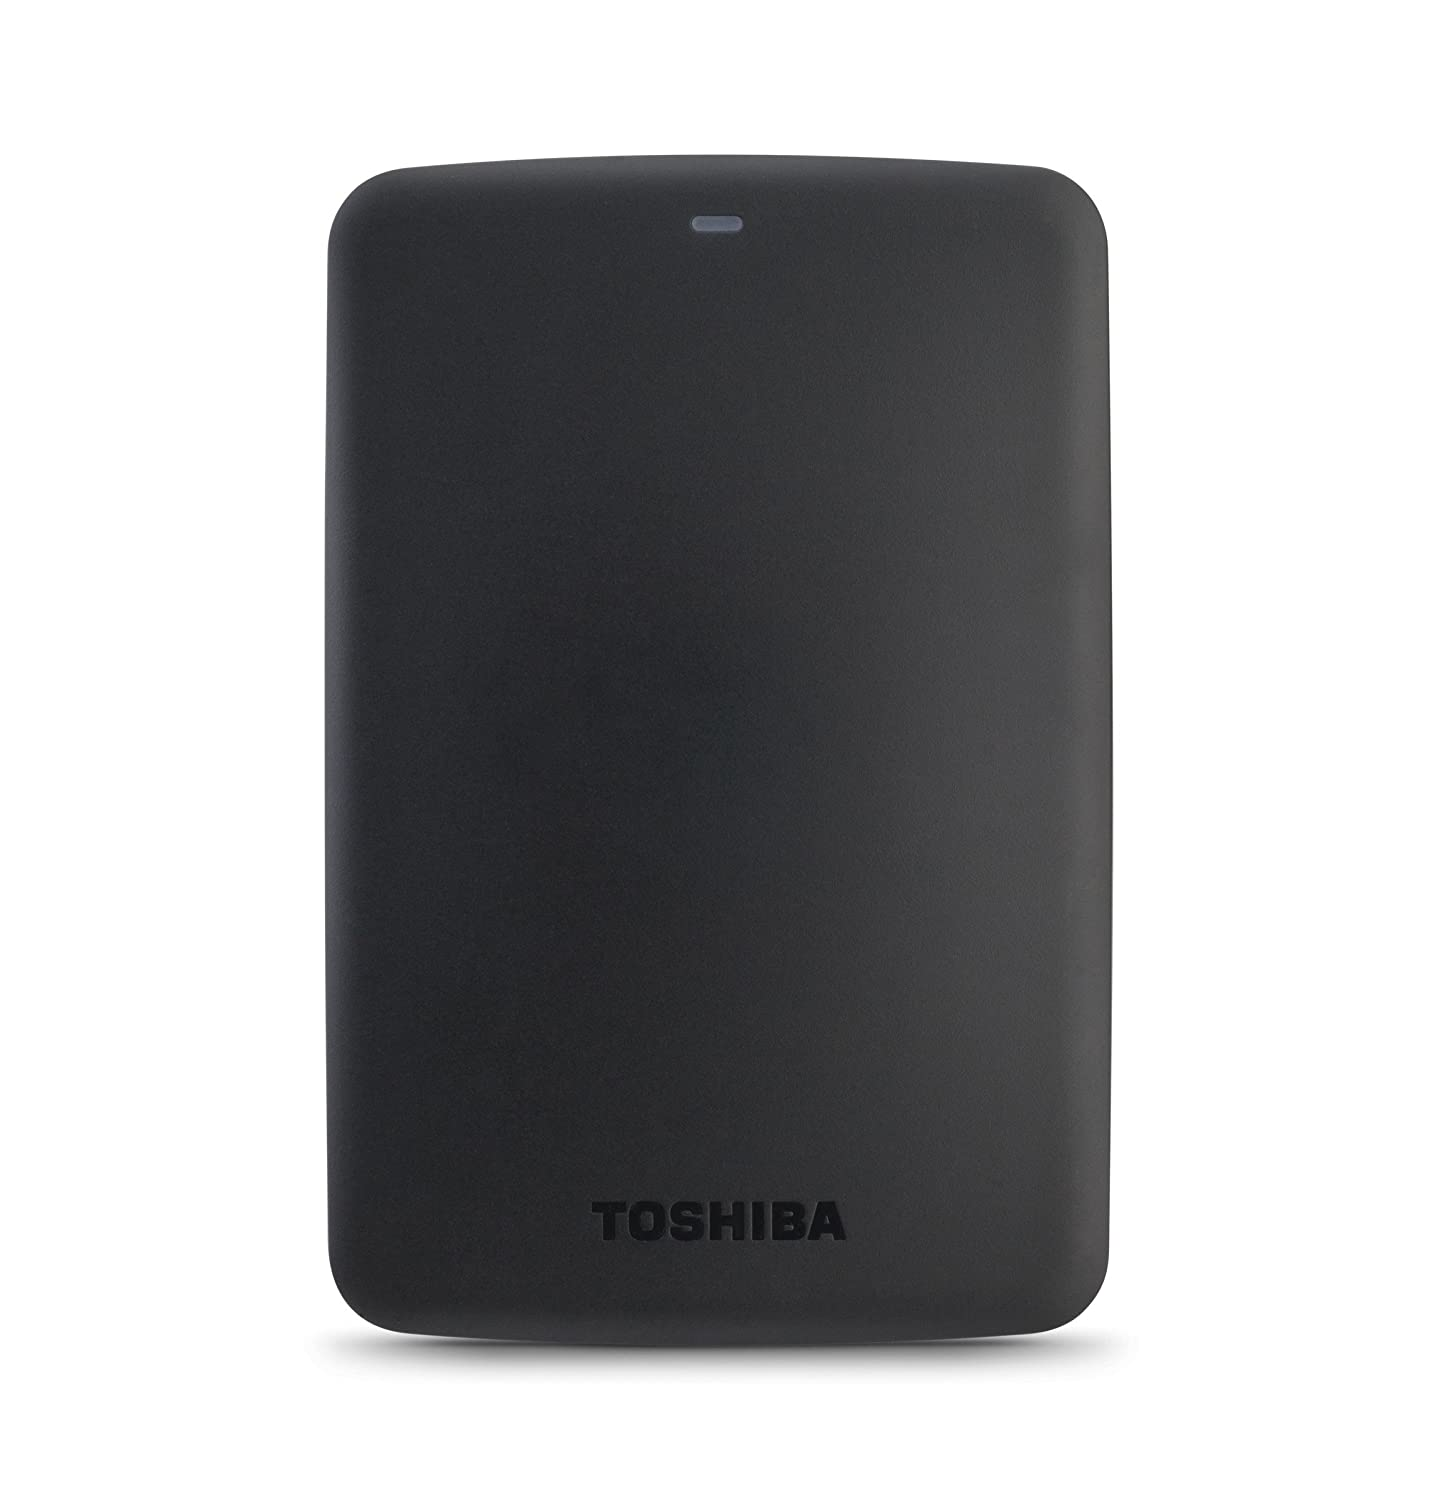 toshiba external hard drive drivers windows 7